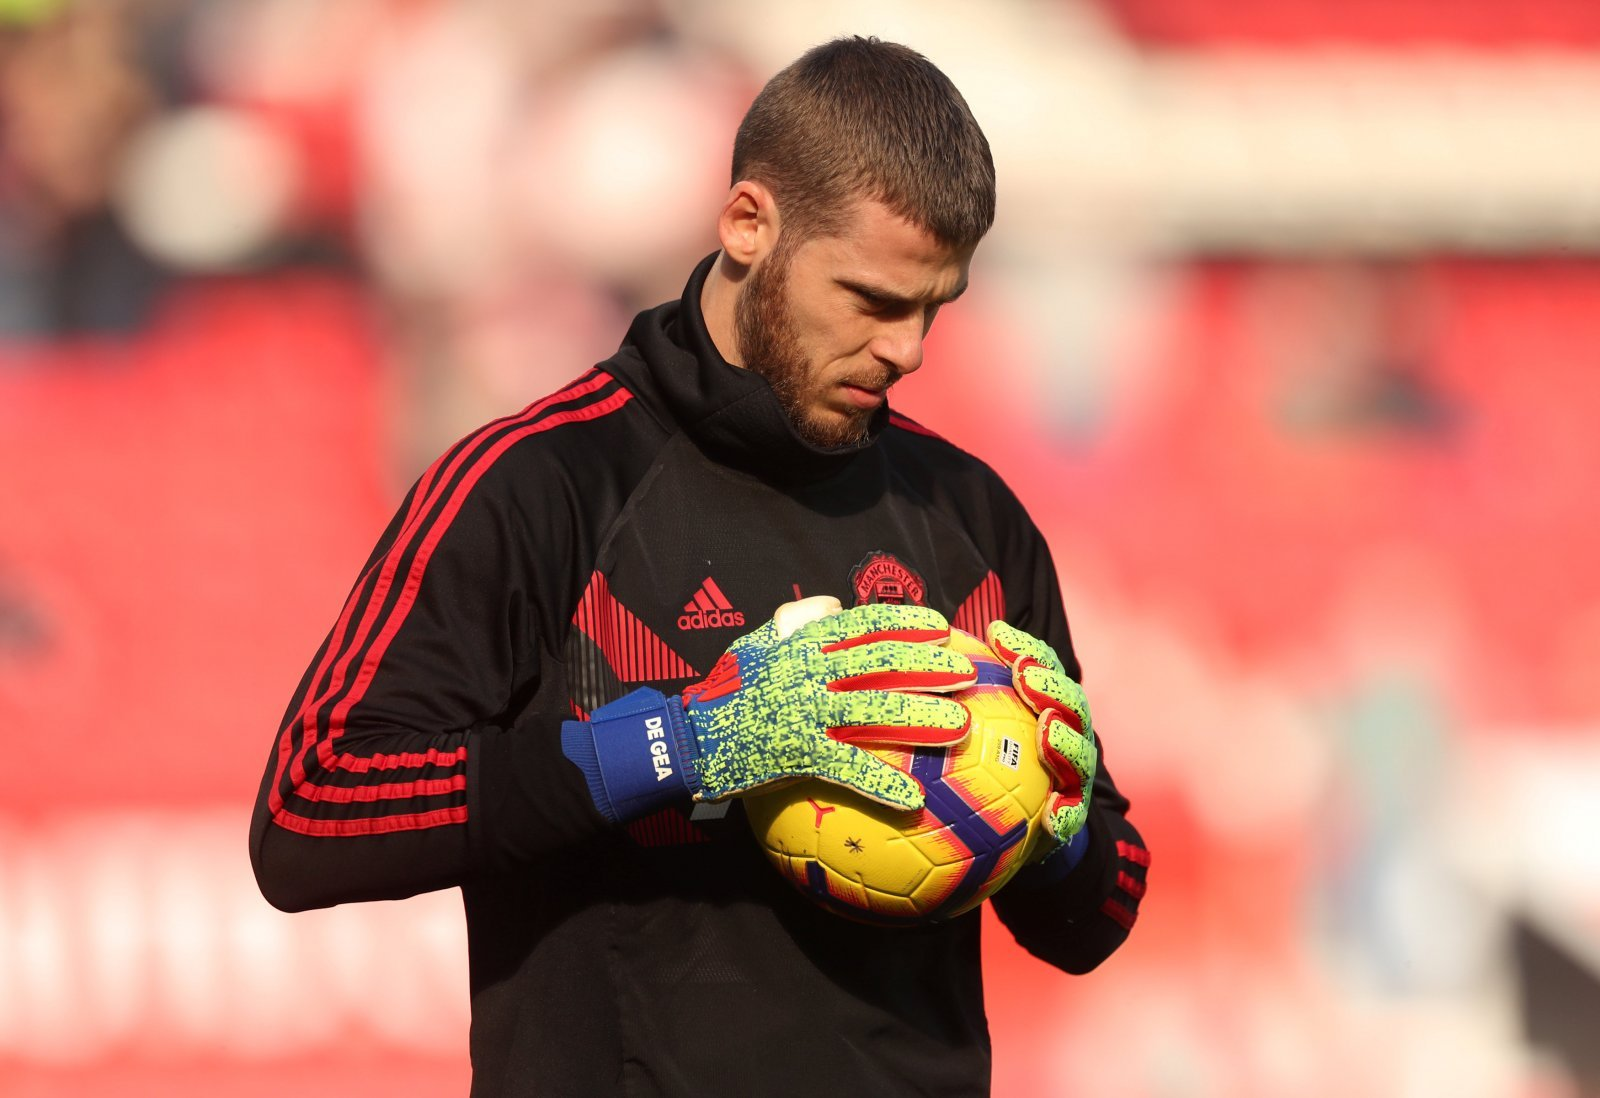 Manchester United should let David De Gea go if he holds them to ransom